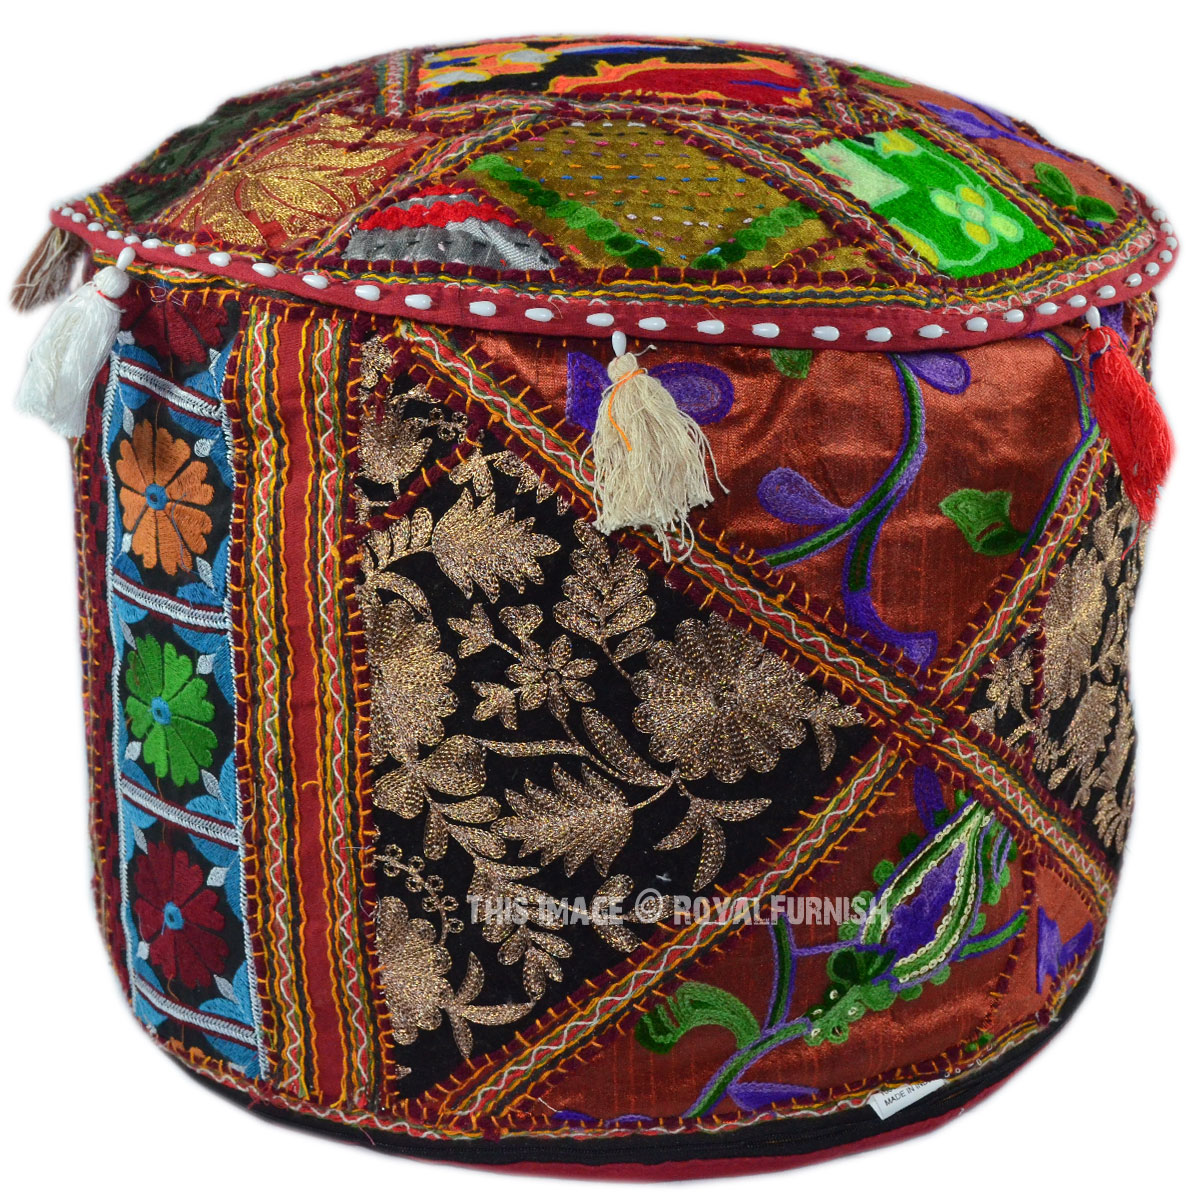 Red Round Suzani Handmade Patchwork Embroidered Ottoman